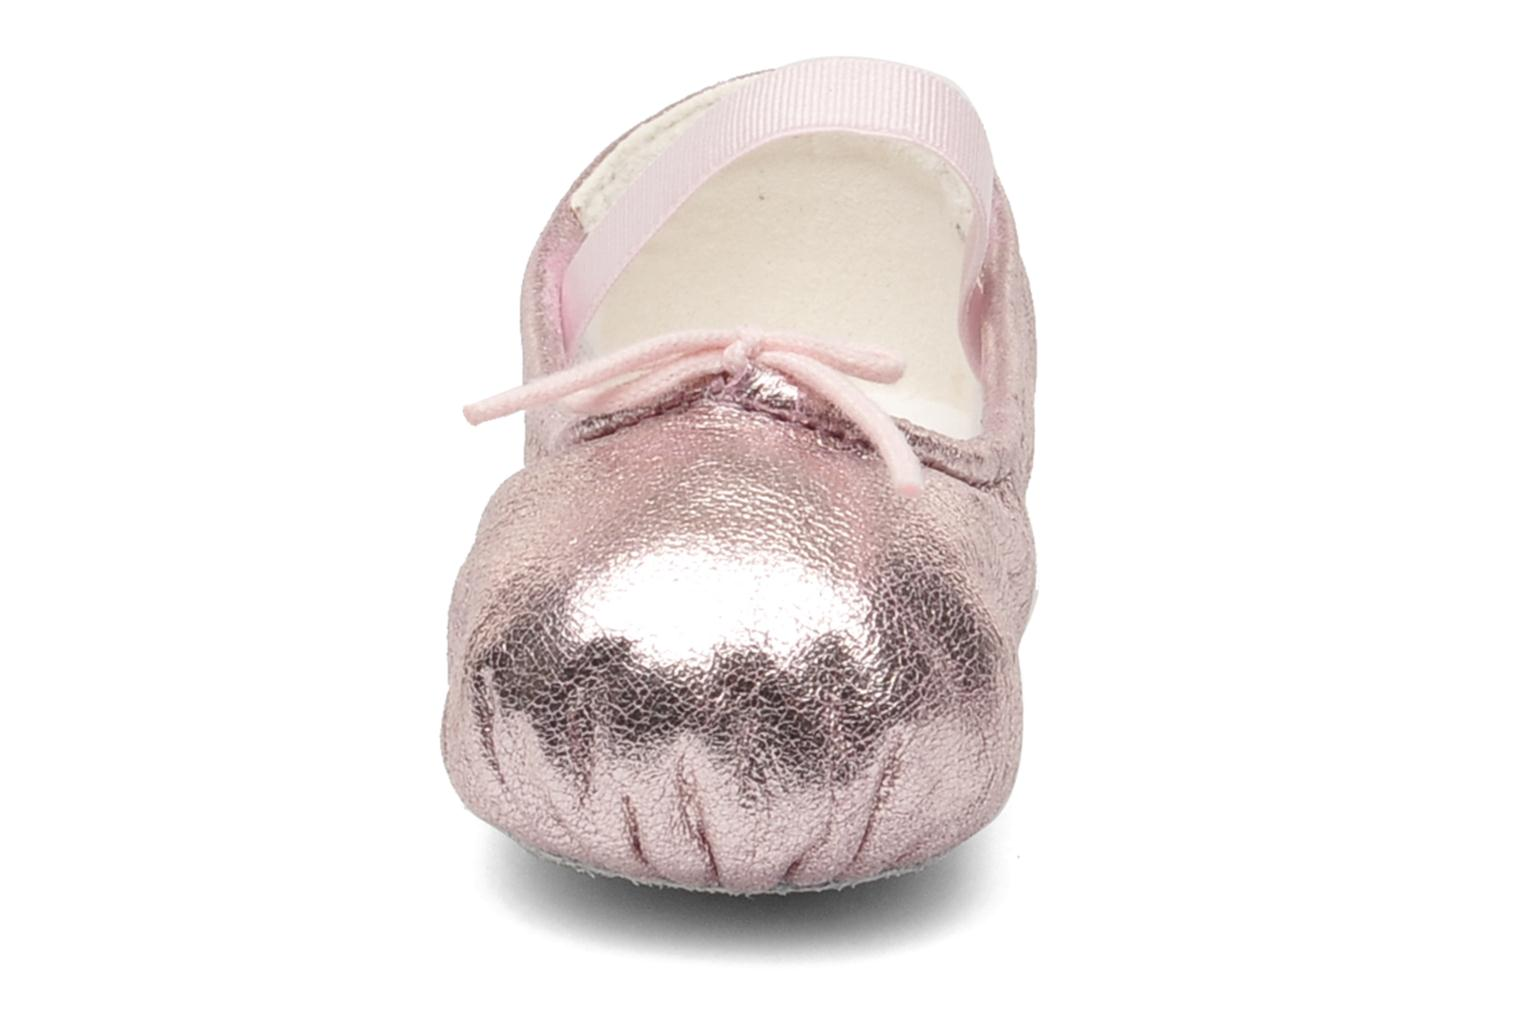 Ballerina's Bloch Baby Angelica Roze model